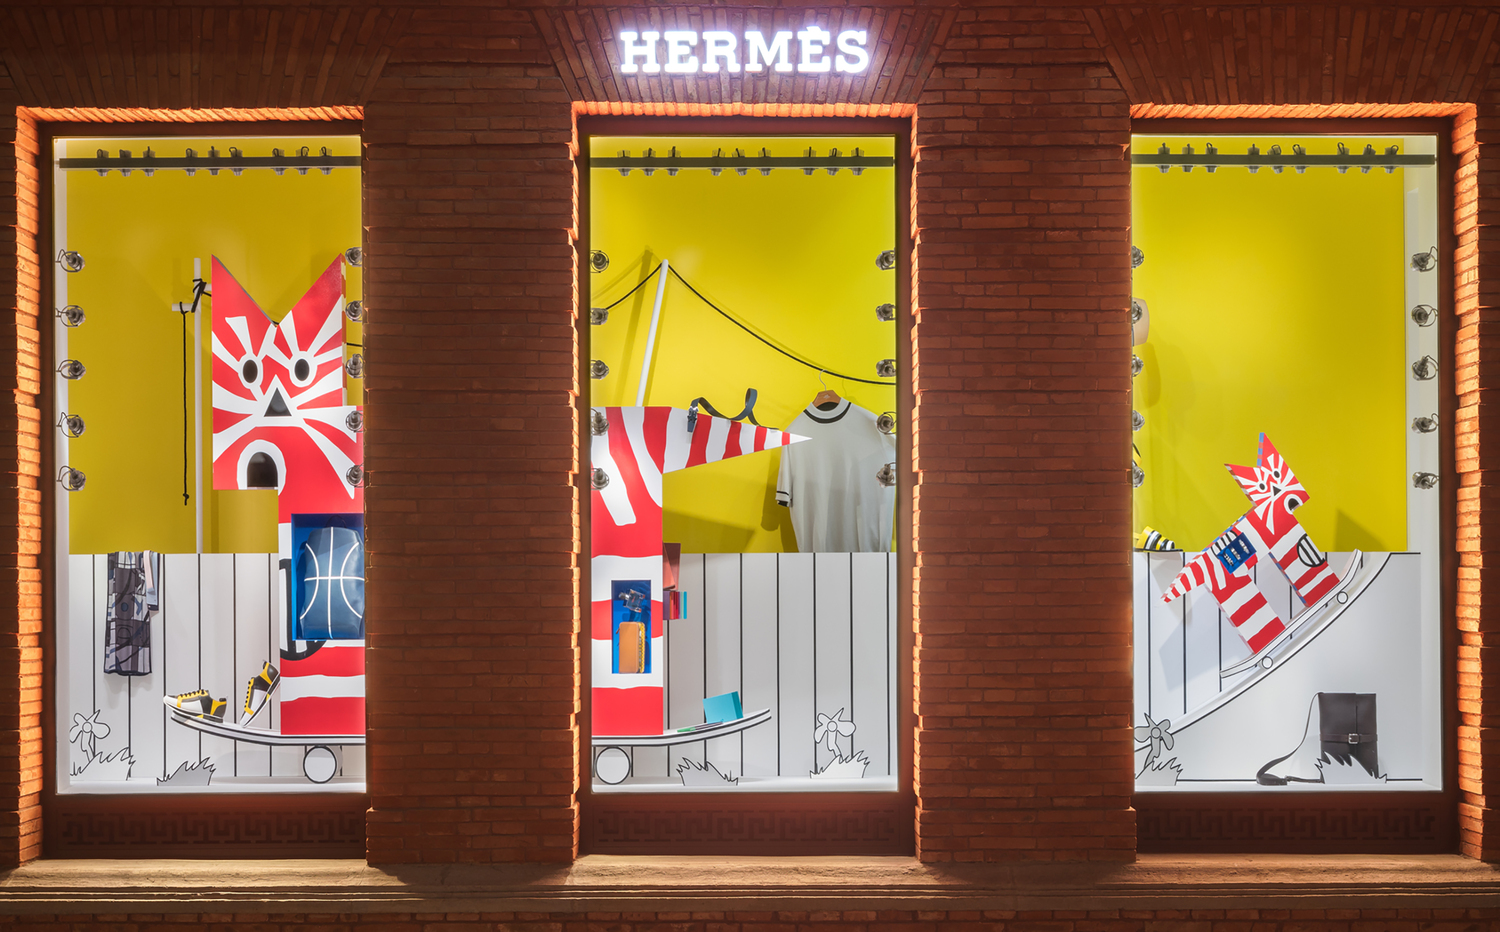 'The abstraction of doing into labour', Summer Windows Project, Hermès Maison Shanghai (8 June - 8 September 2018).